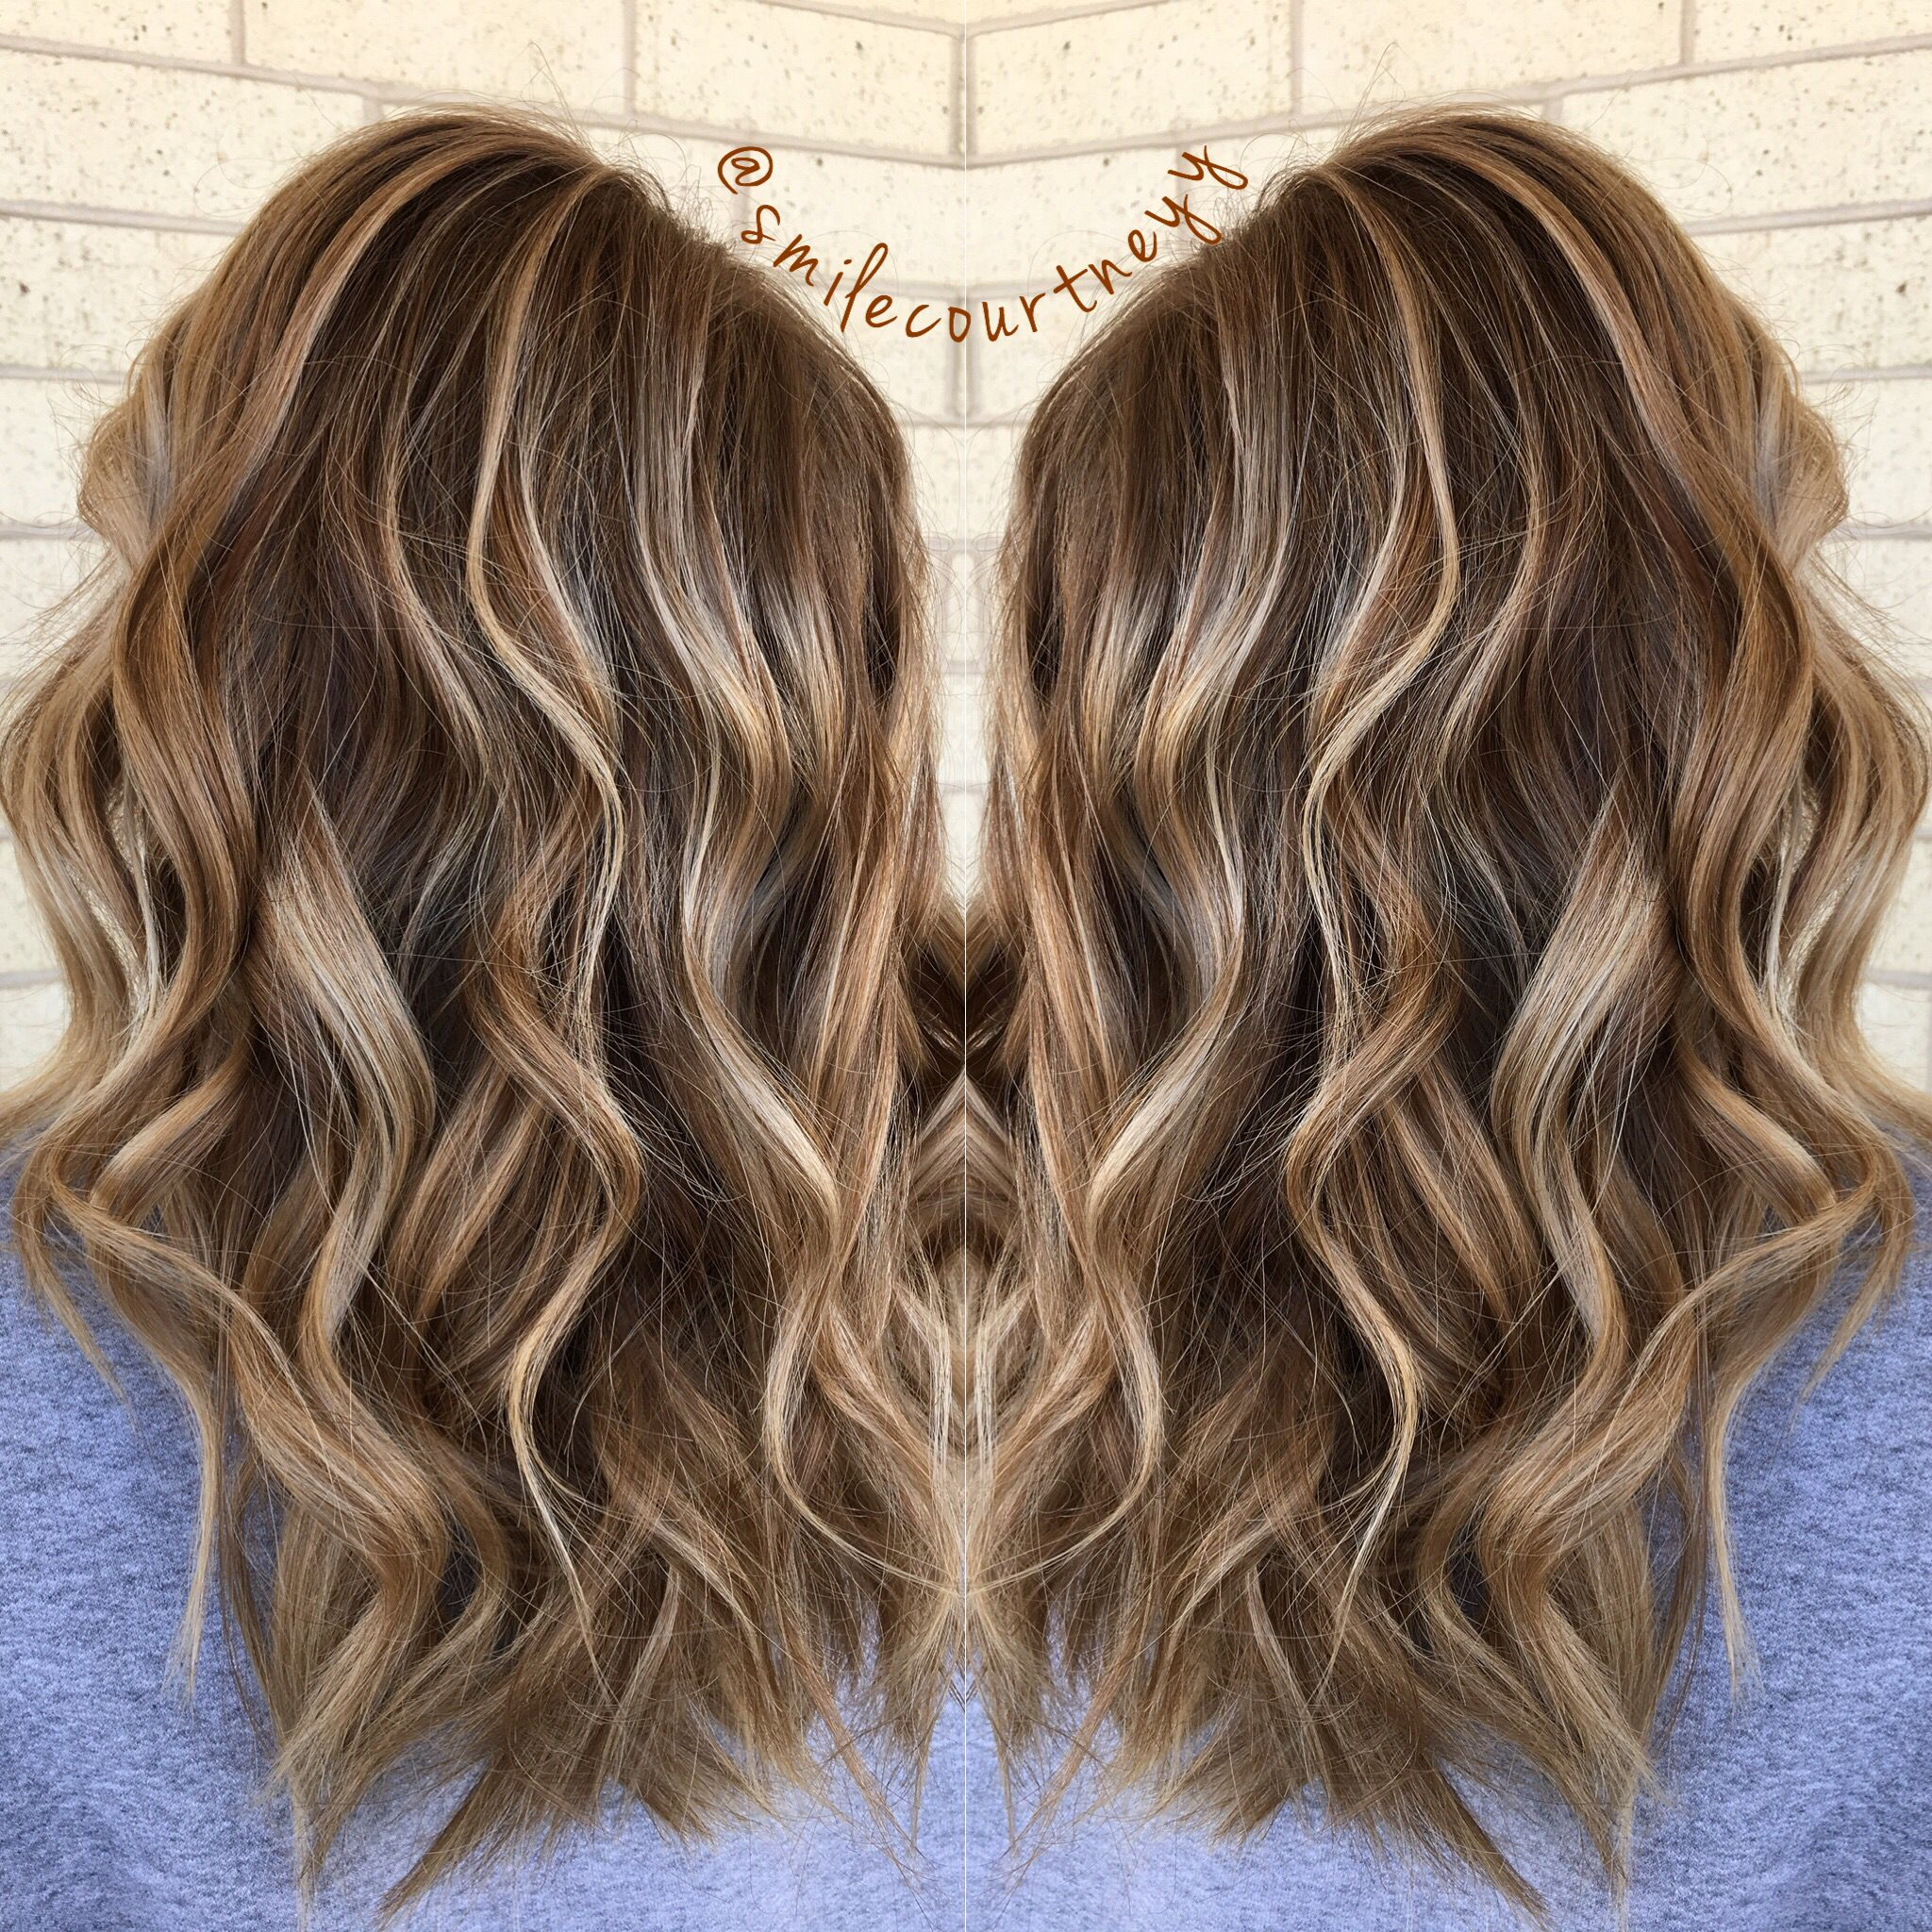 Pinterest L A Y L A Short Hair Balayage Brown Hair Balayage Balayage Hair